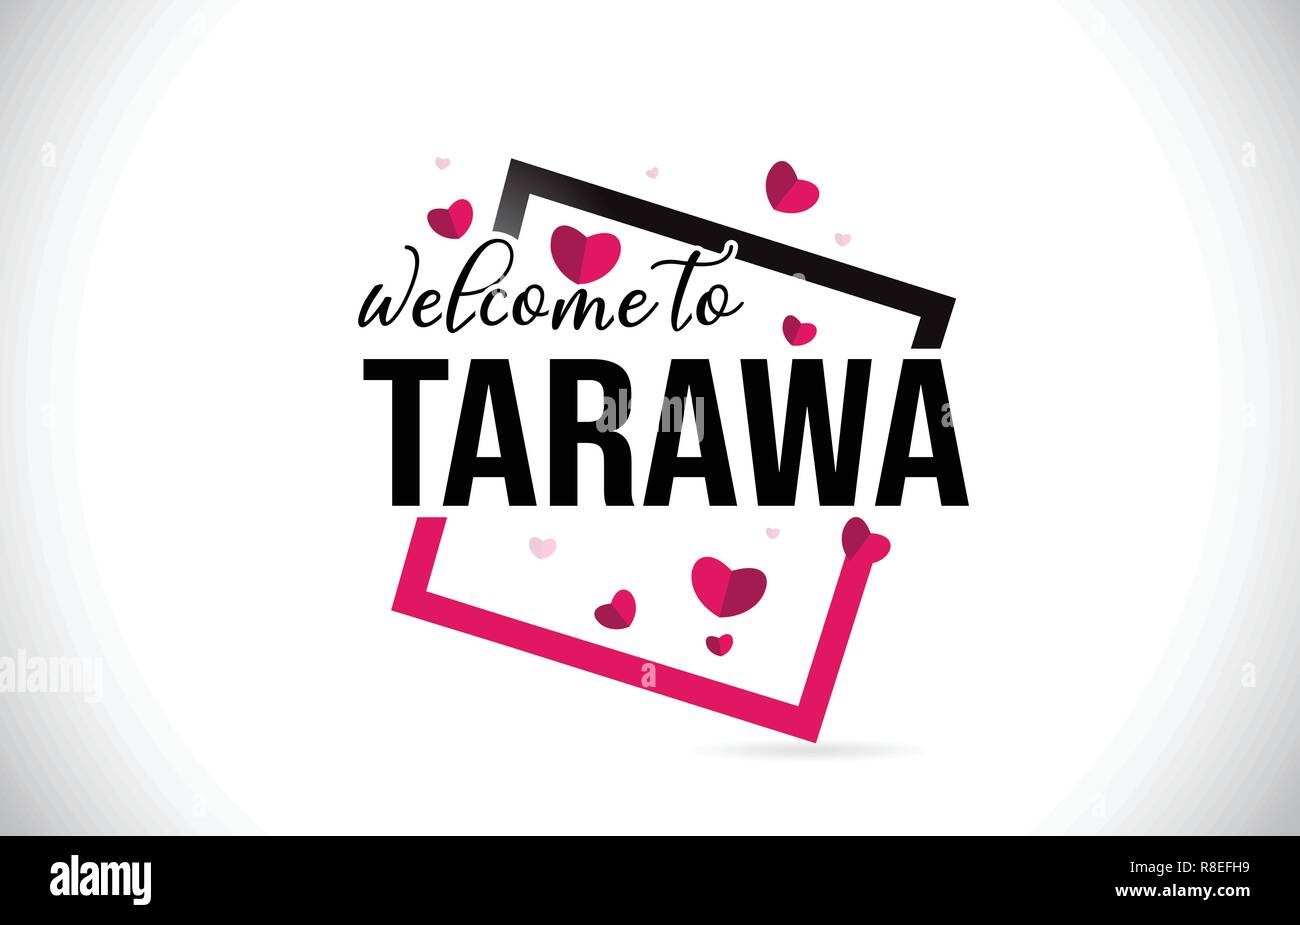 Tarawa Welcome To Word Text with Handwritten Font and  Red Hearts Square Design Illustration Vector. - Stock Image